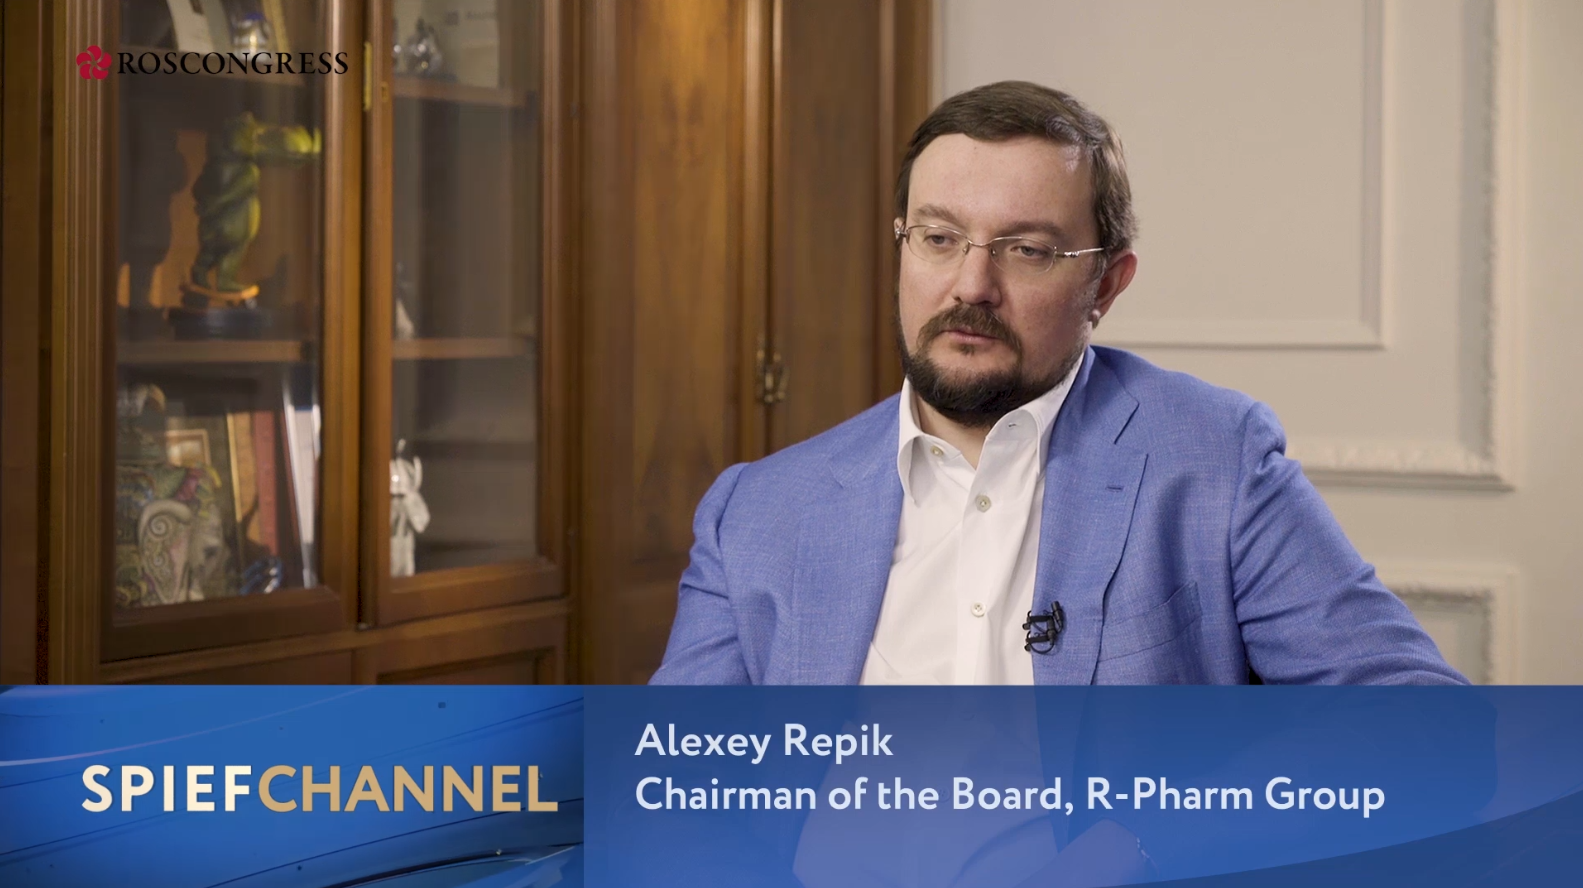 Alexey Repik, Chairman of the Board R-Pharm Group